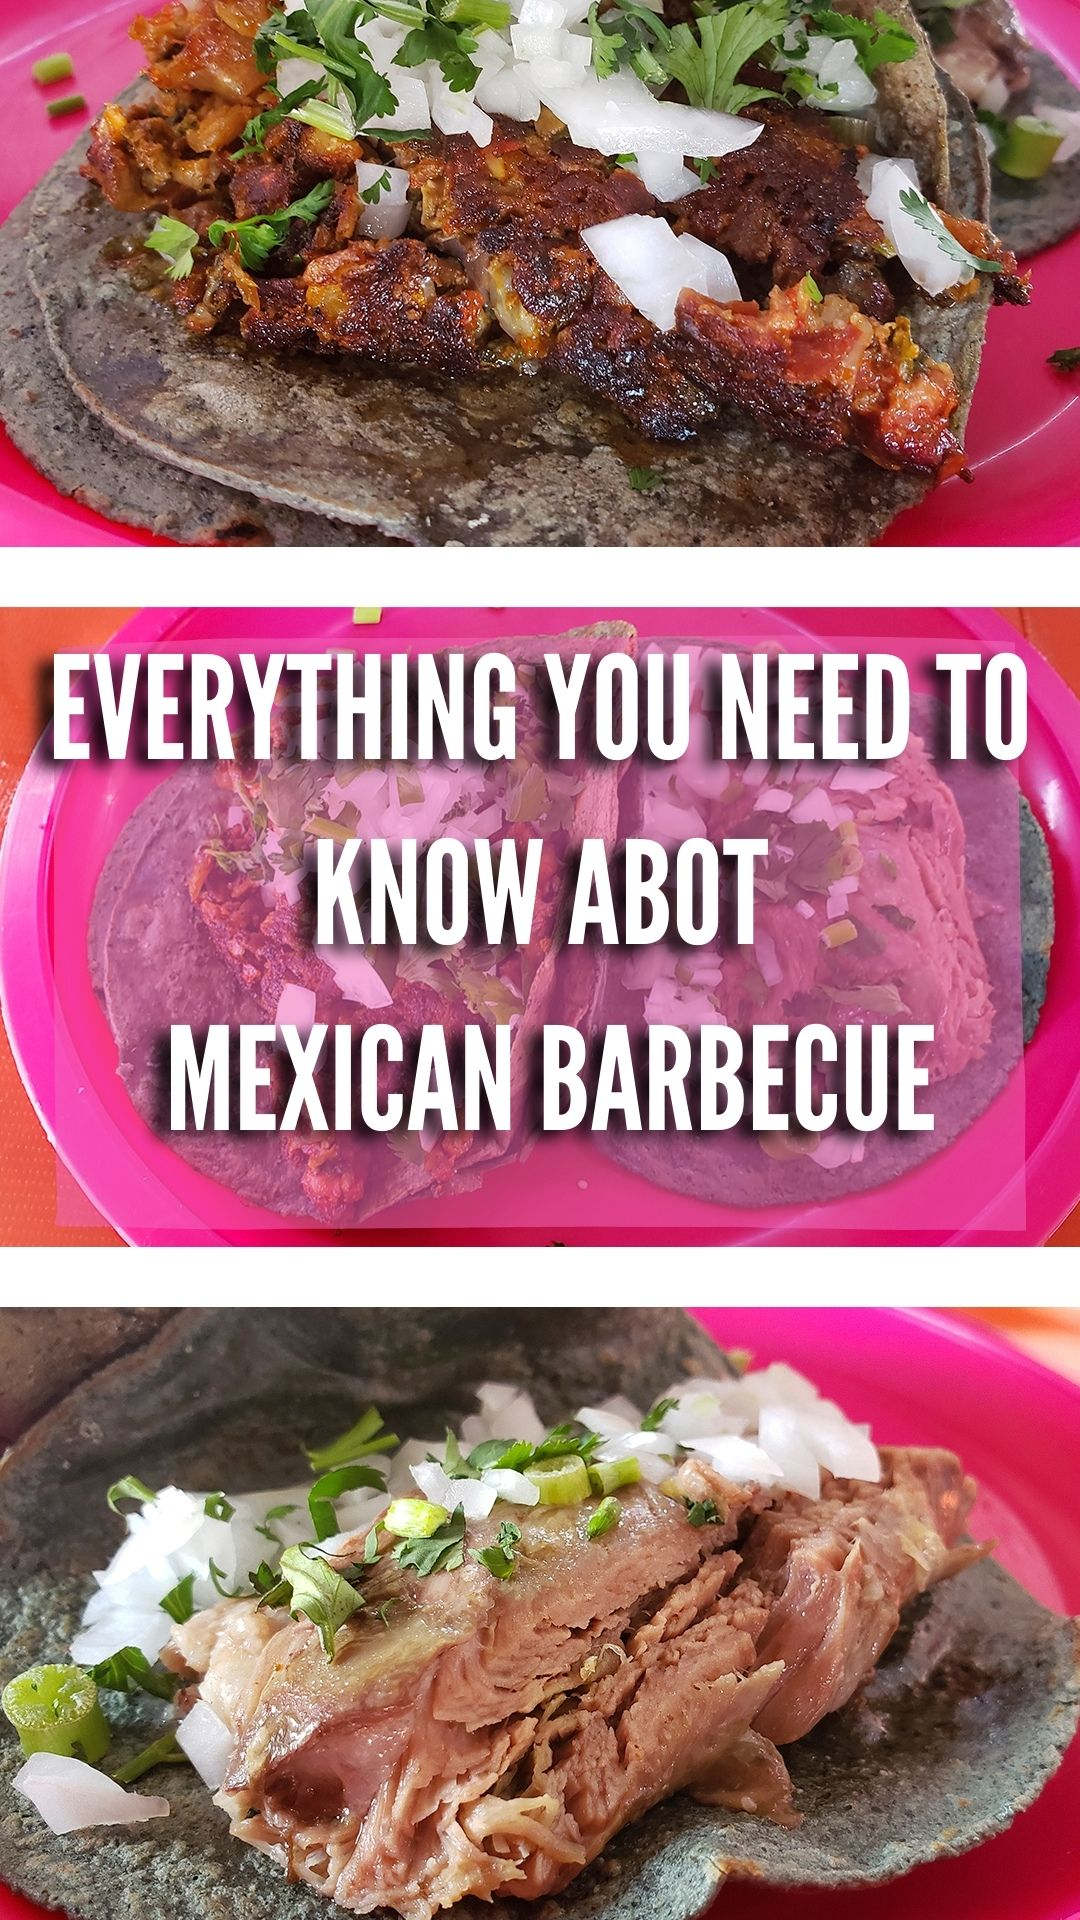 Everything you need to know about Mexican Barbecue